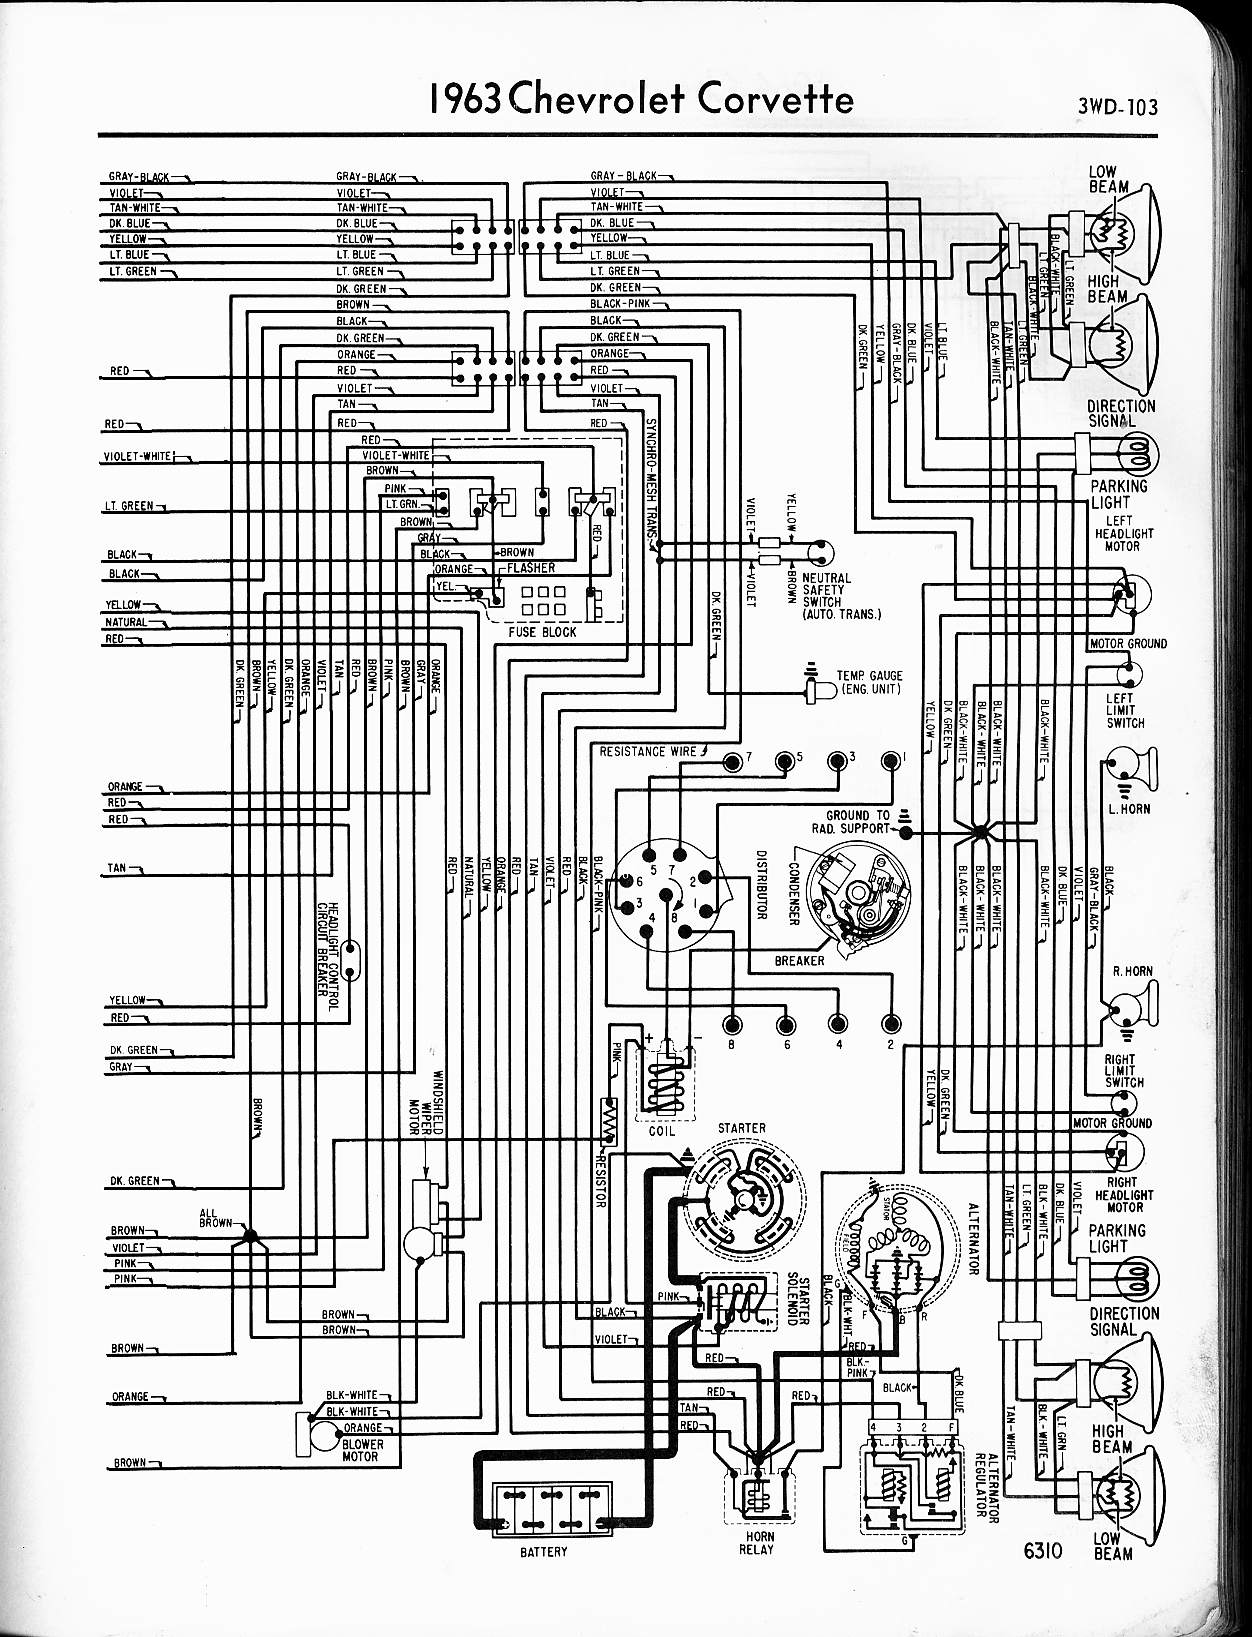 MWireChev63_3WD 103 57 65 chevy wiring diagrams 1969 corvette wiring diagram at edmiracle.co